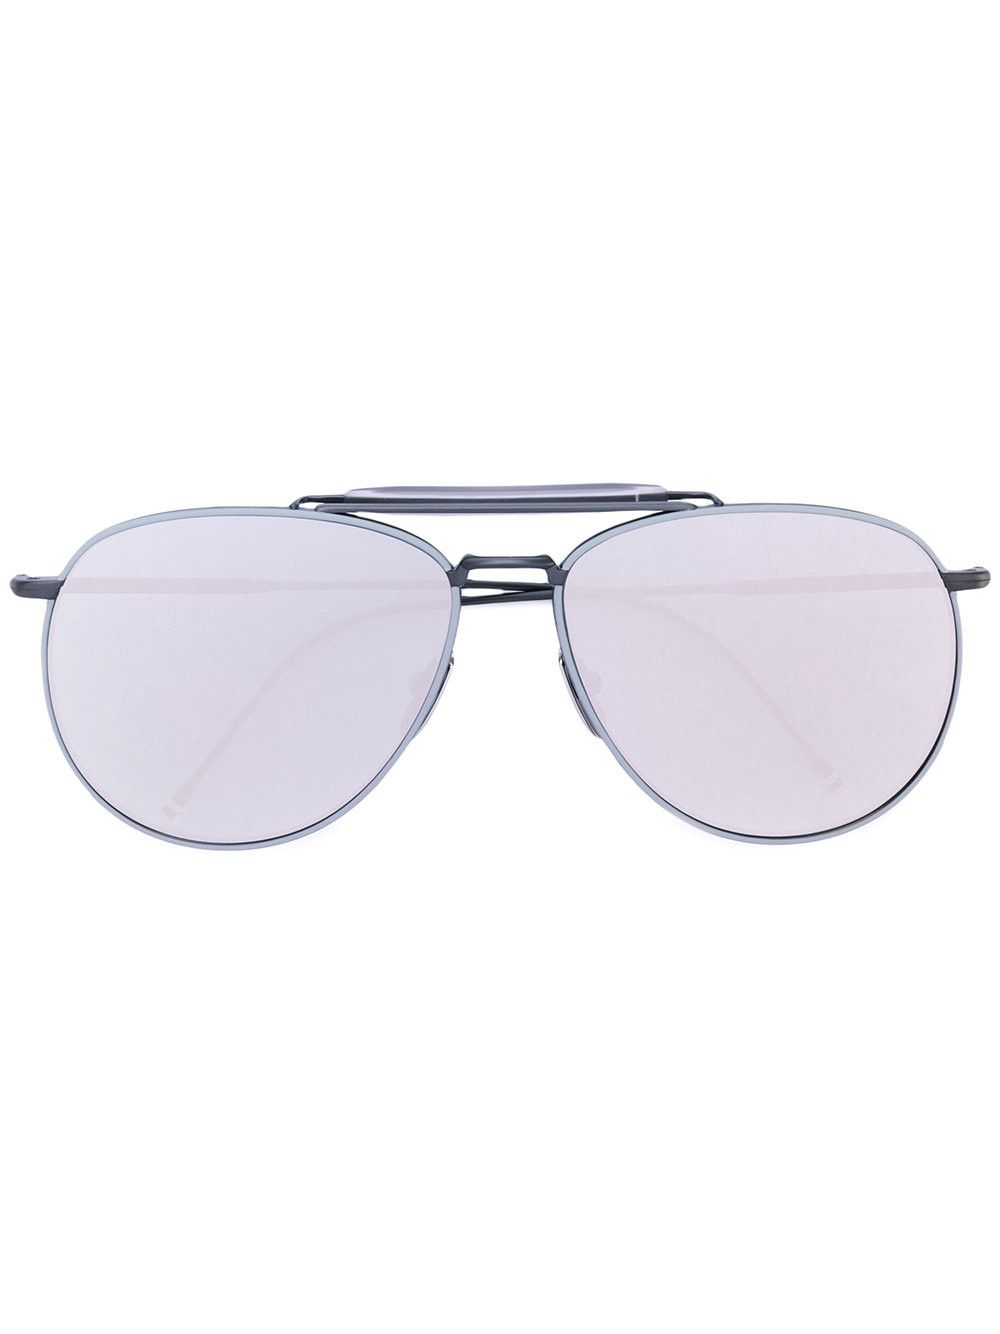 2a216cd6778d Men s Accessories · Mens Fashion · THOM BROWNE .  thombrowne   Thom Browne  Eyewear